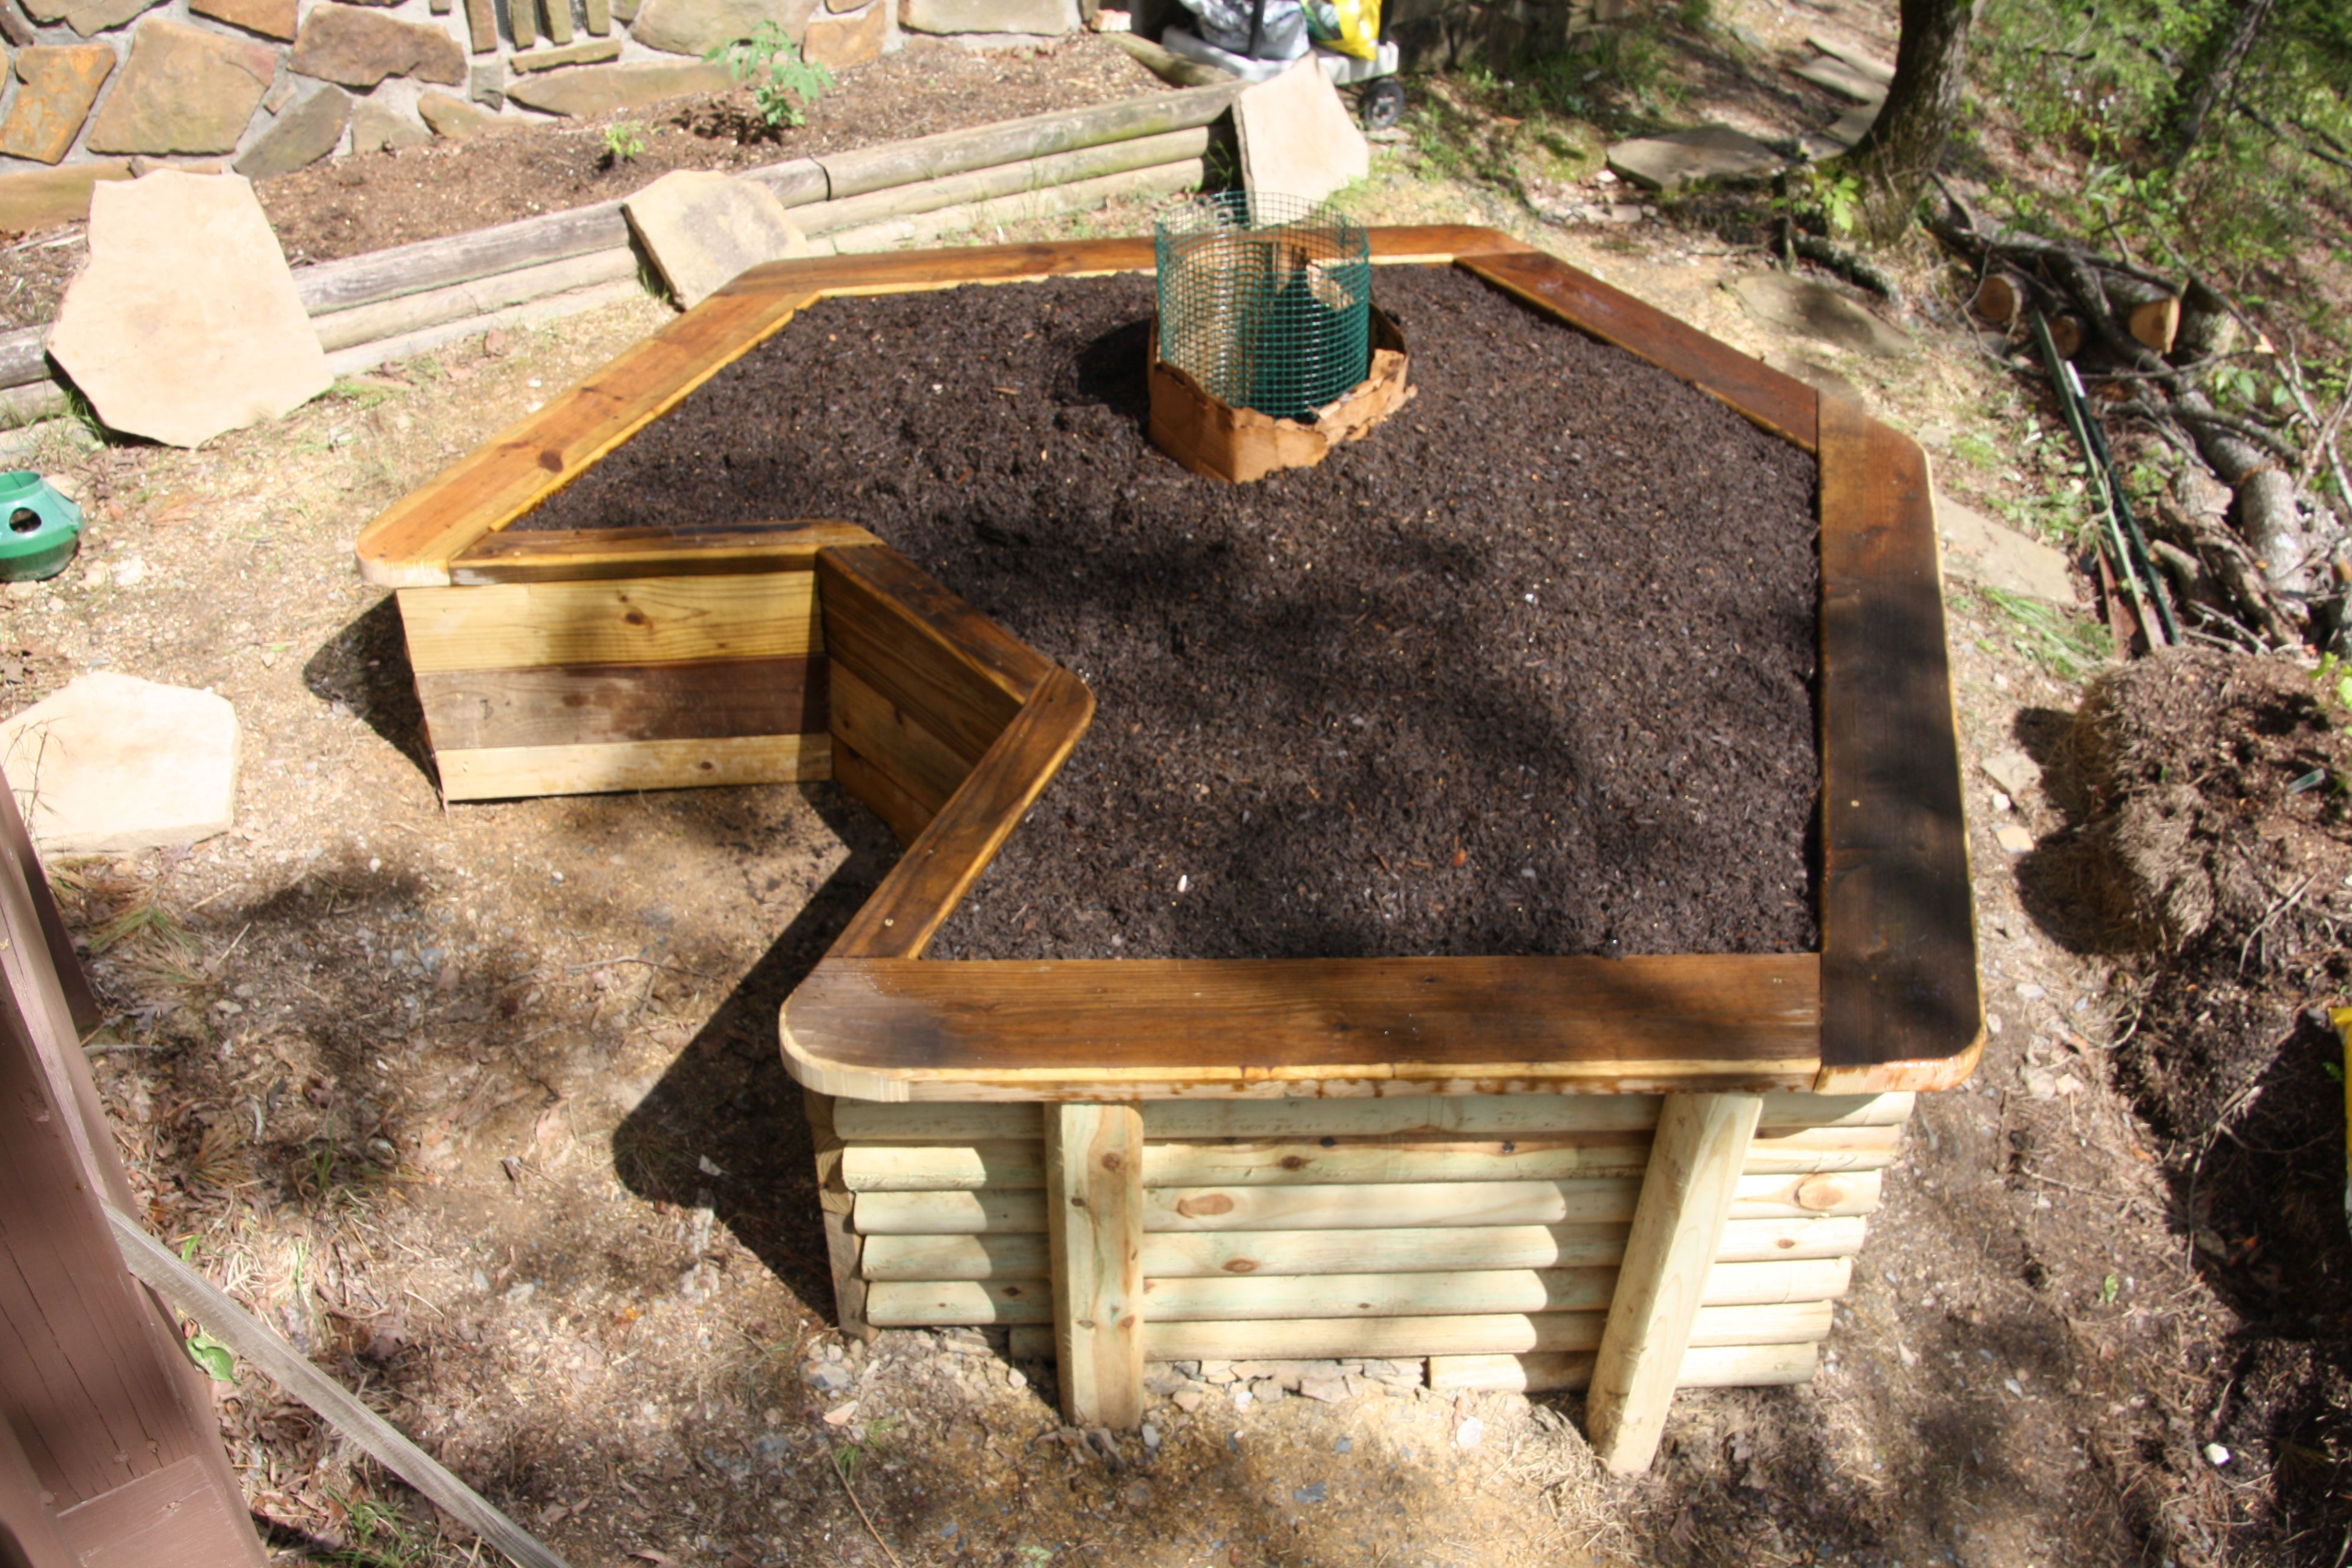 I just finished building my first keyhole garden. Now, to start ...